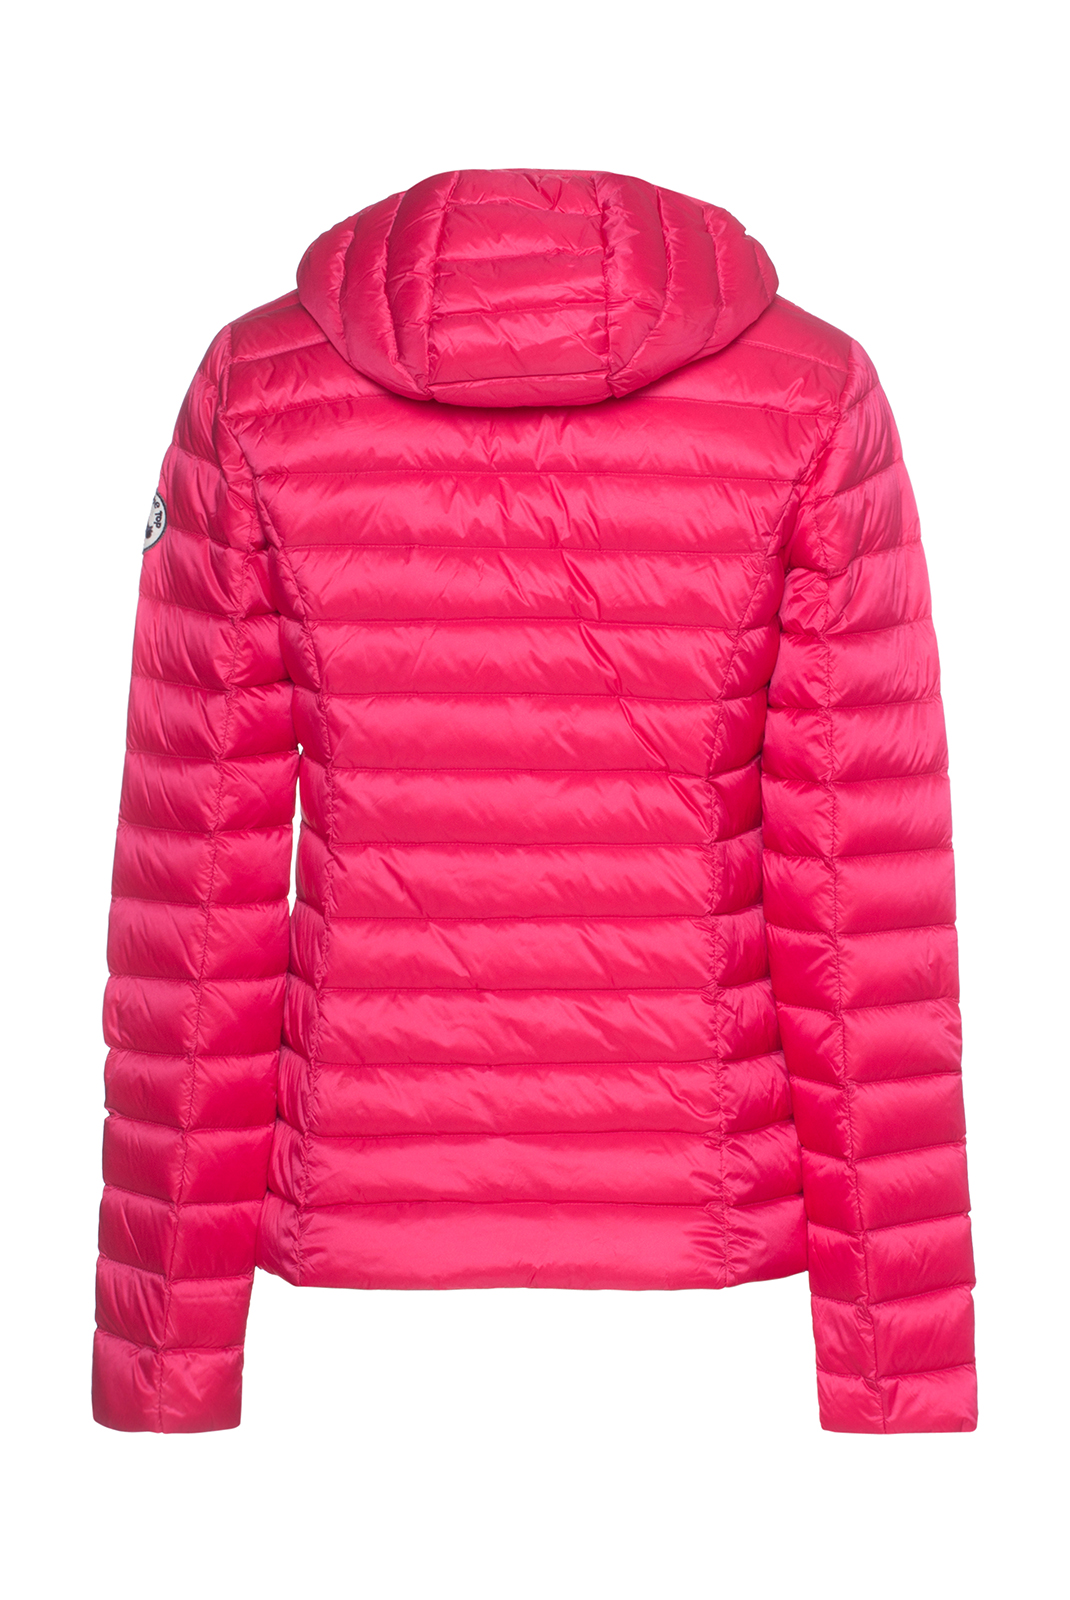 Blouson / doudoune  Just over the top CLOE 408 FUSHIA